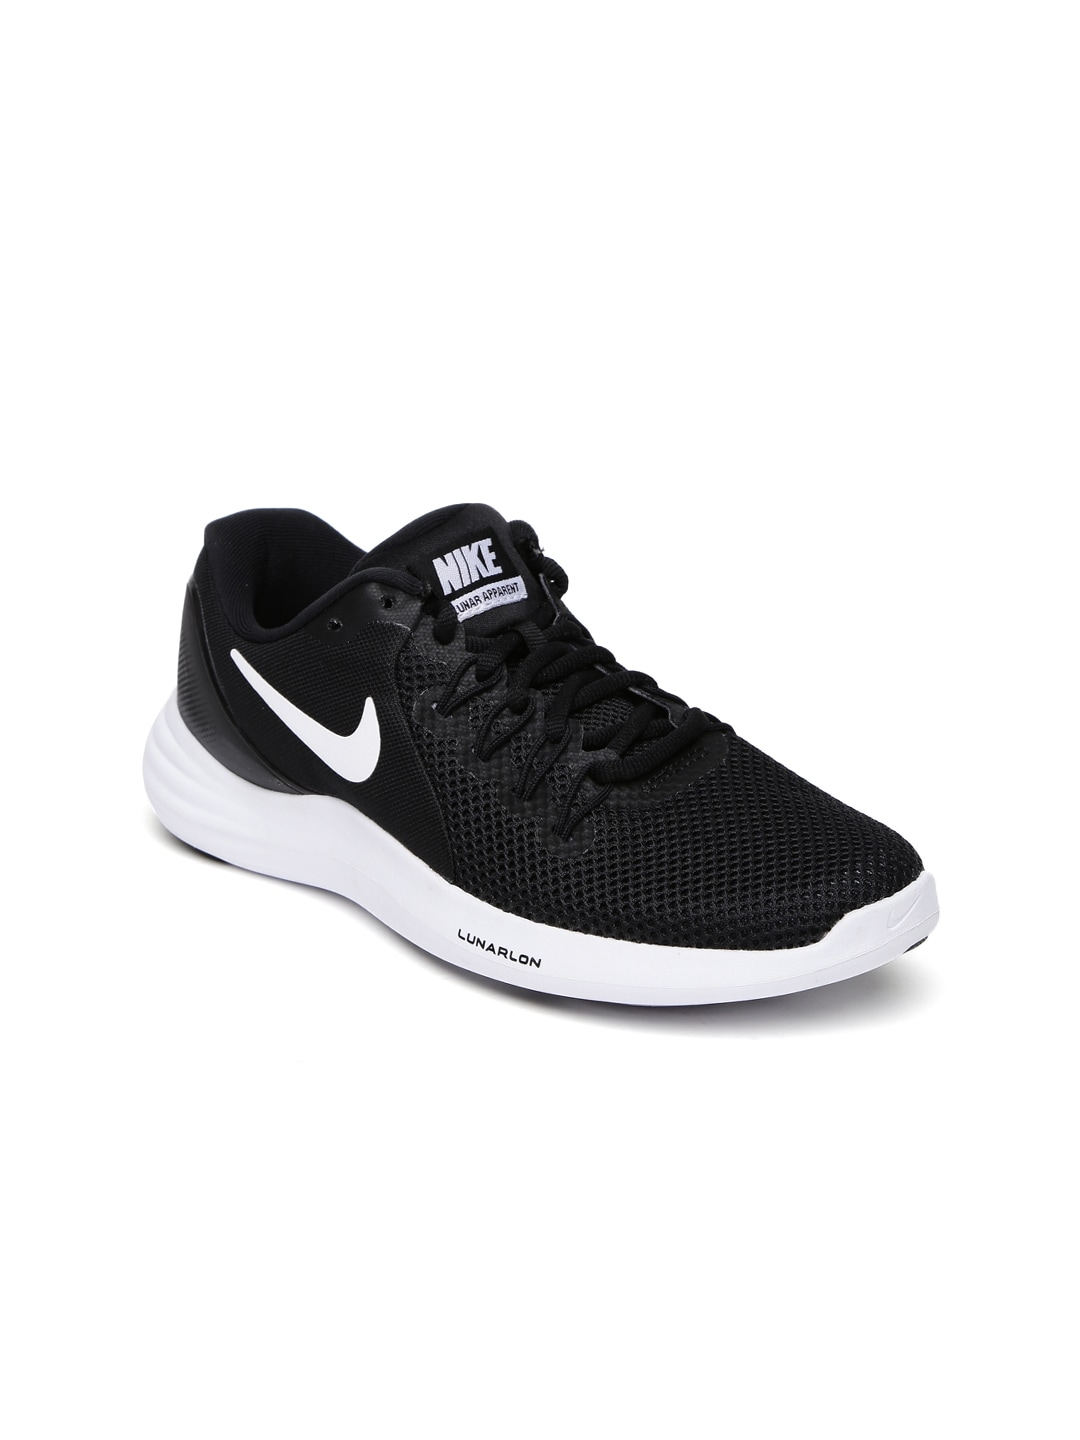 d168a26dea3c1 Nike Lunar Shoes - Buy Nike Lunar Shoes online in India